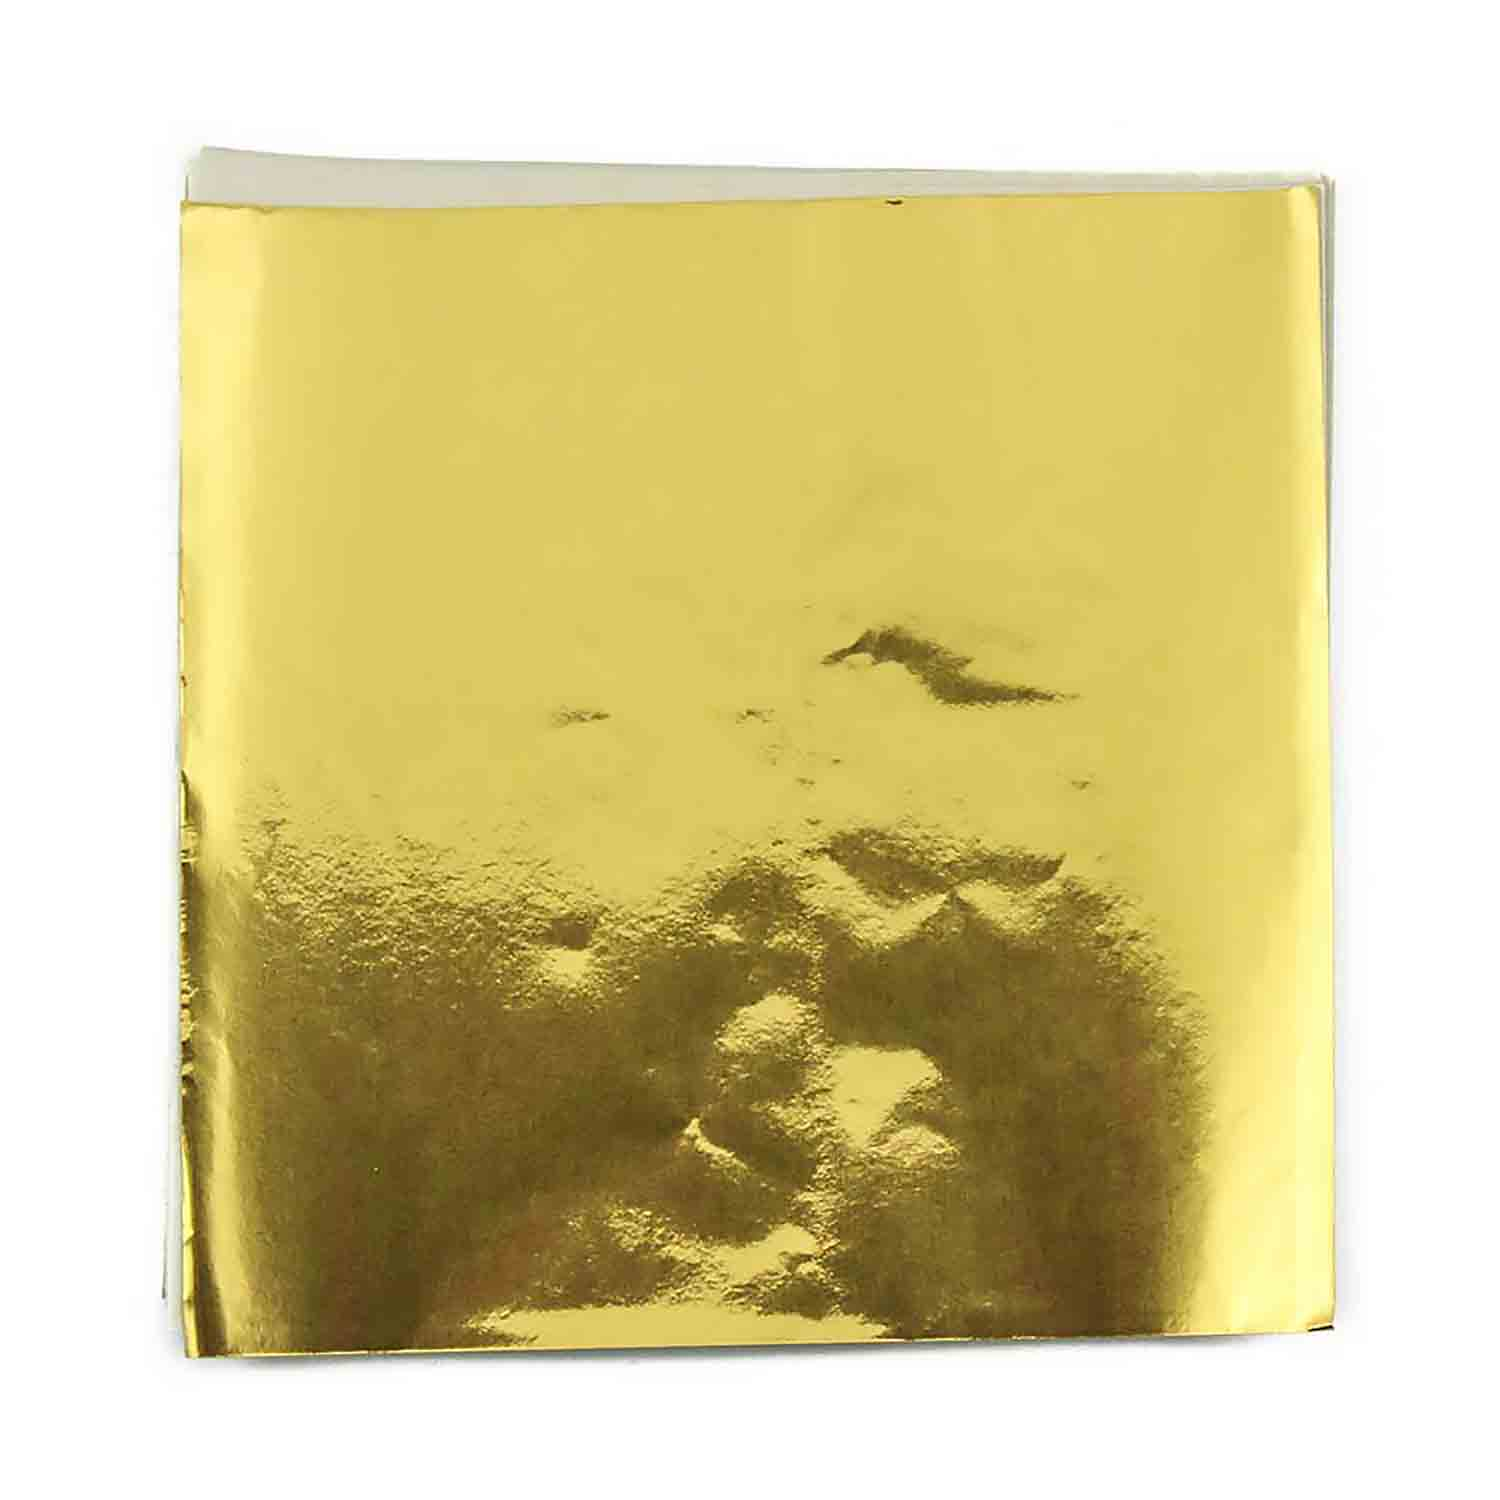 "6 x 6"" Foil Wrapper Gold"